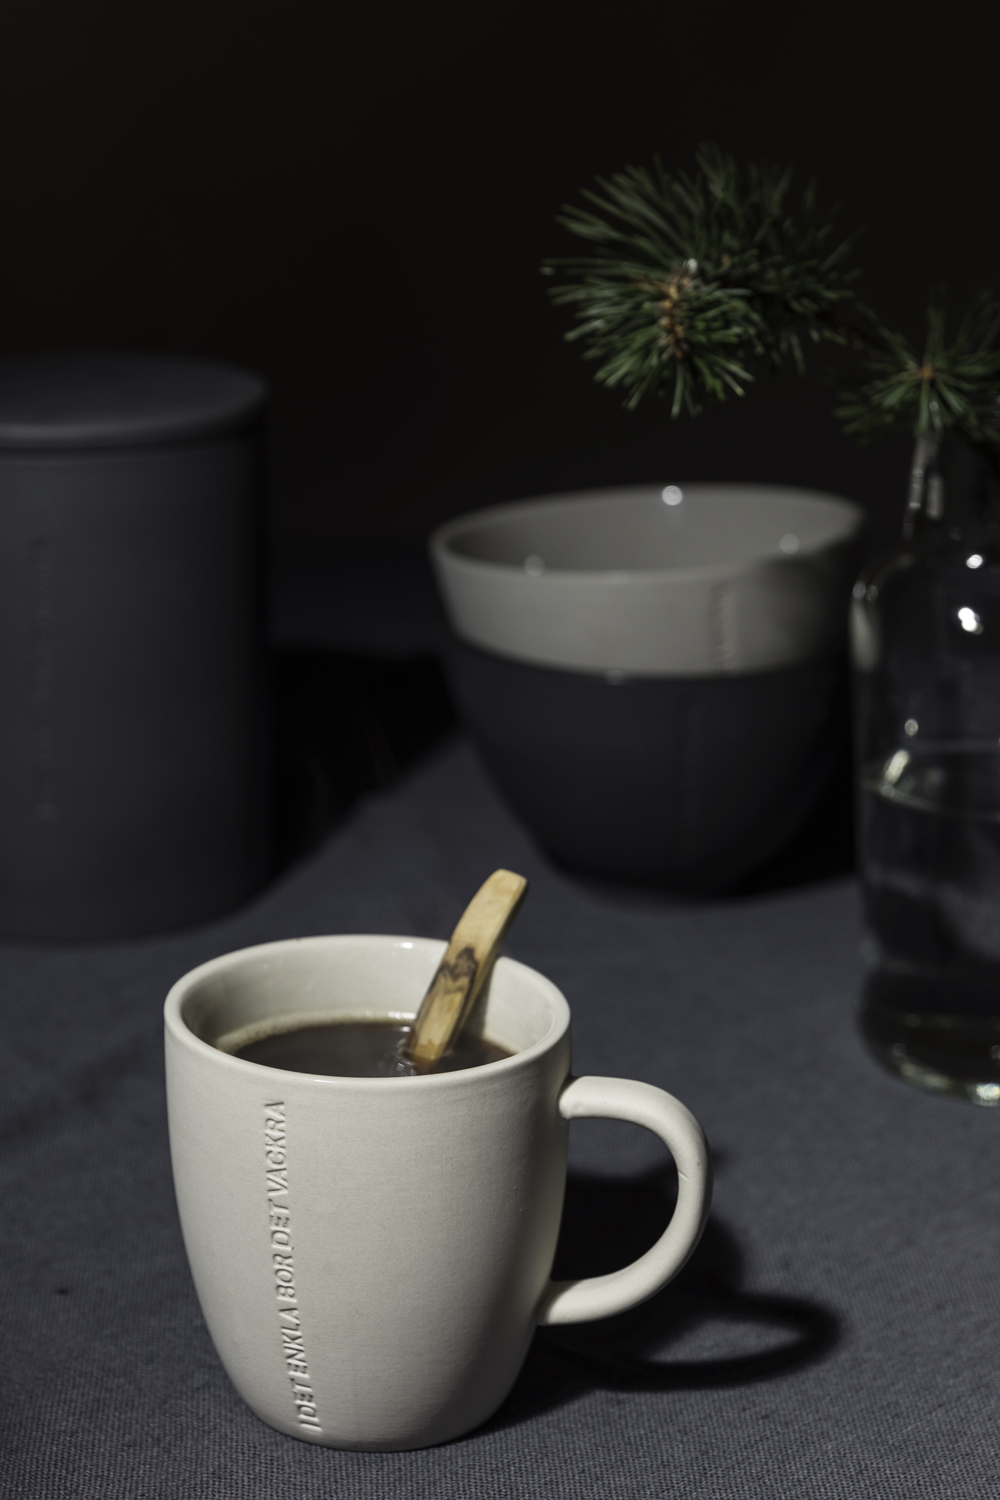 Ernst, Sweden, scandinavian design, kitchen, nordic home, Visualaddict, photography, valokuvaaja, Frida Steiner, dark, tablemood, tablescape, linen, ceramics, keramiikka, keittiö, kattaus, table setting, dinner, Christmas, coffee